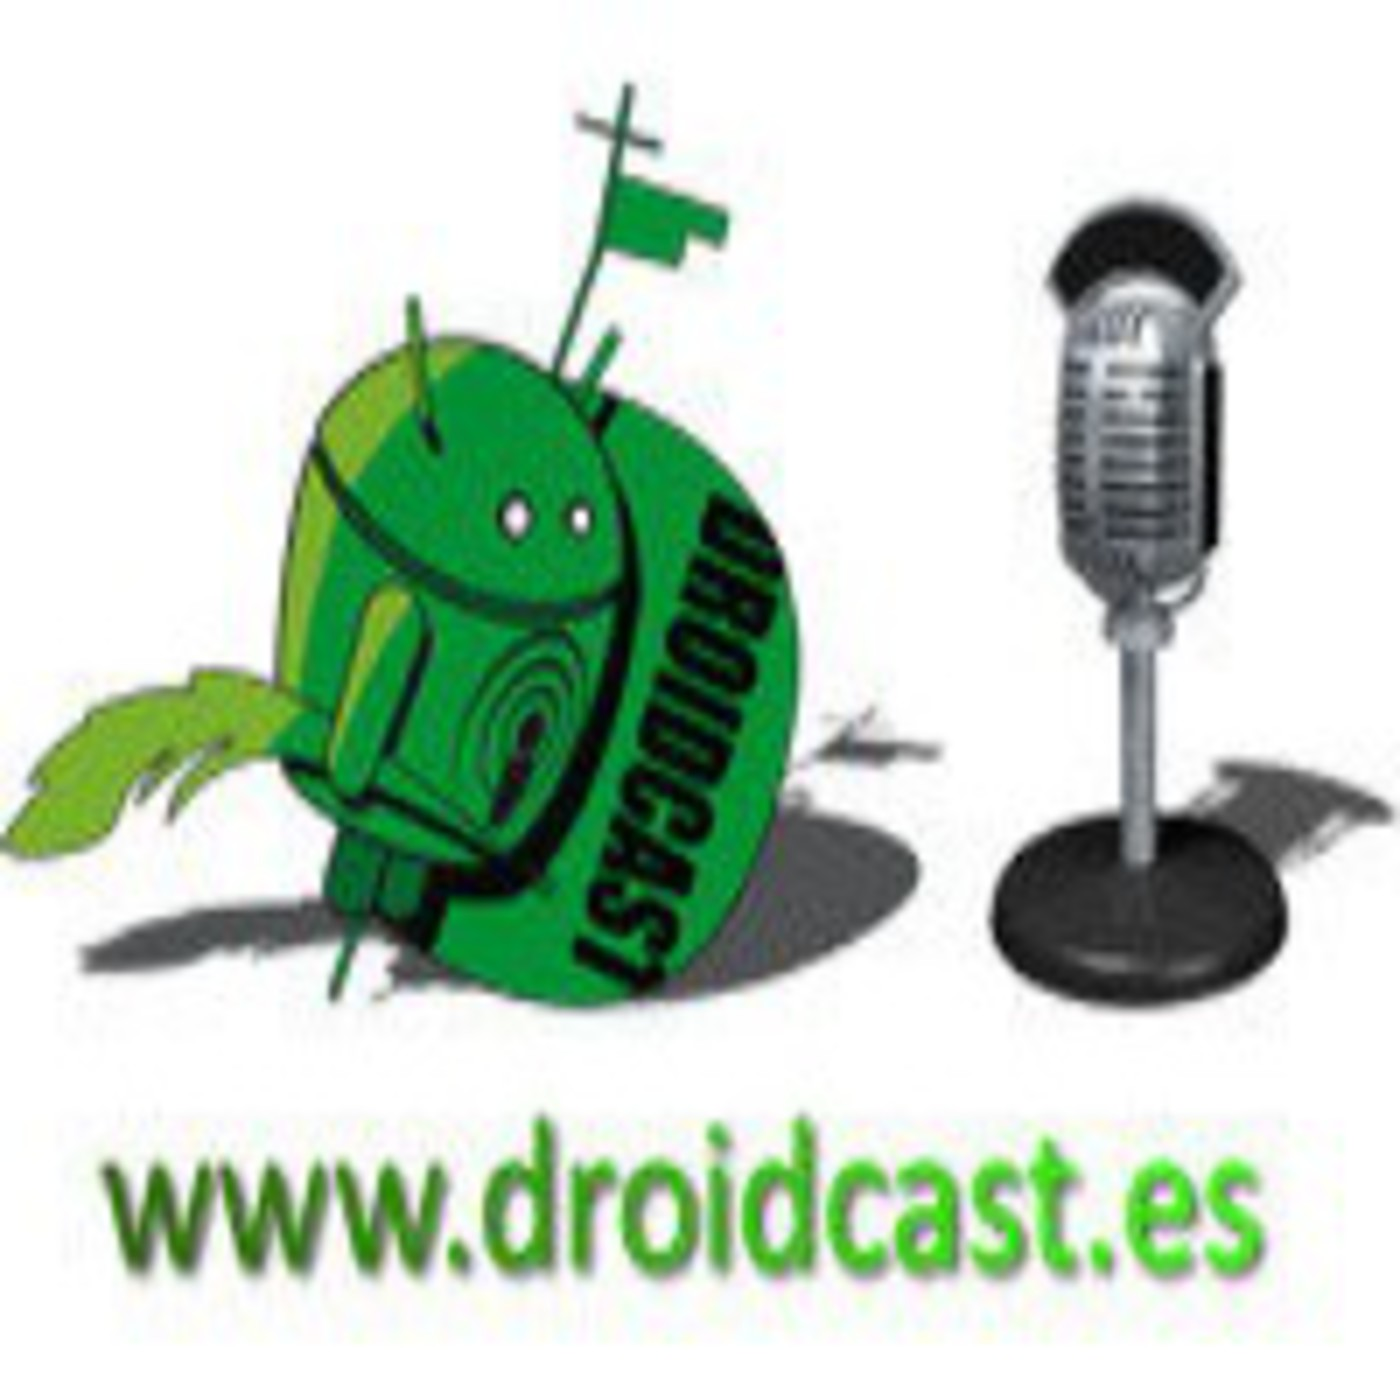 66 Droidcast, Android, Touchpal, AntennaPod, Battery Stats, Nexus 7